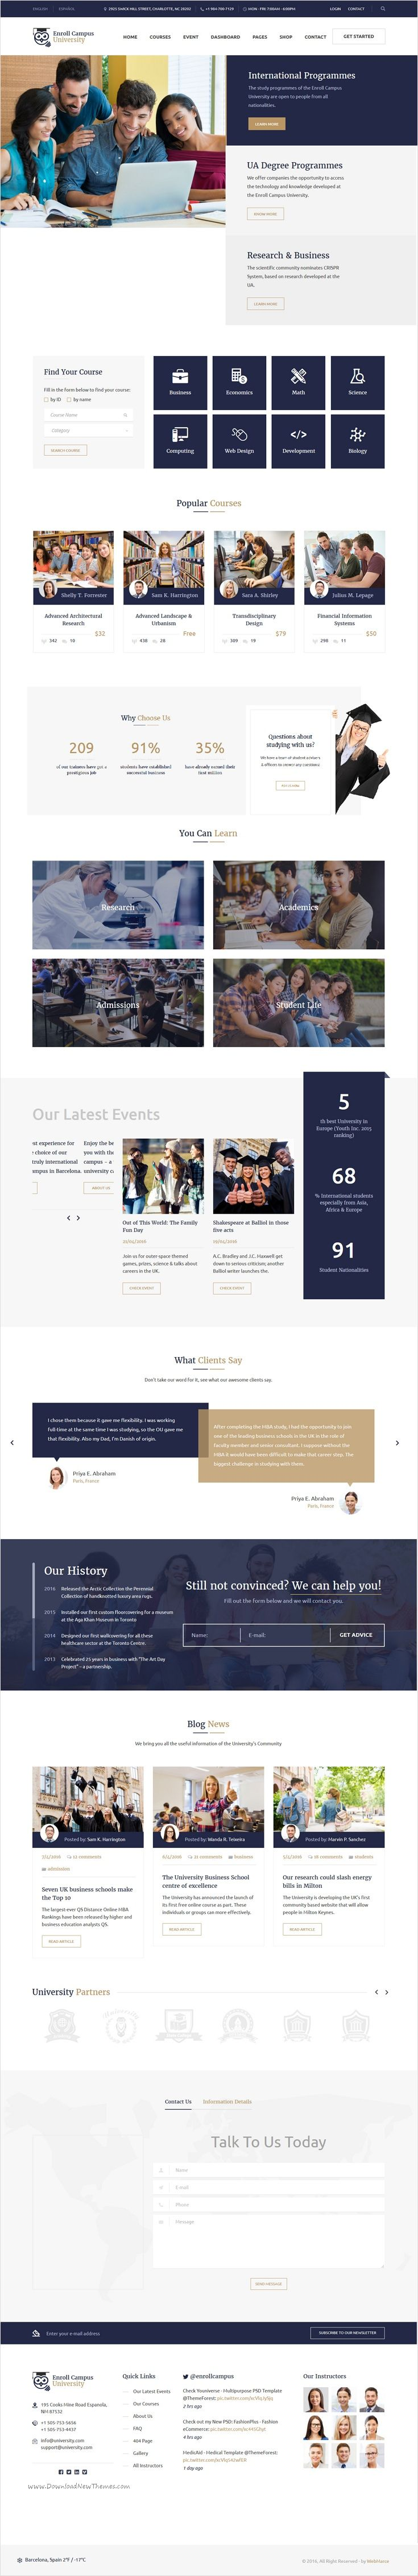 Enroll University is a professional #lms #bootstrap template for school, college or #education website with 4 stunning homepage layouts download now➩ https://themeforest.net/item/enroll-university-college-school-responsive-education-template/17343044?ref=Datasata